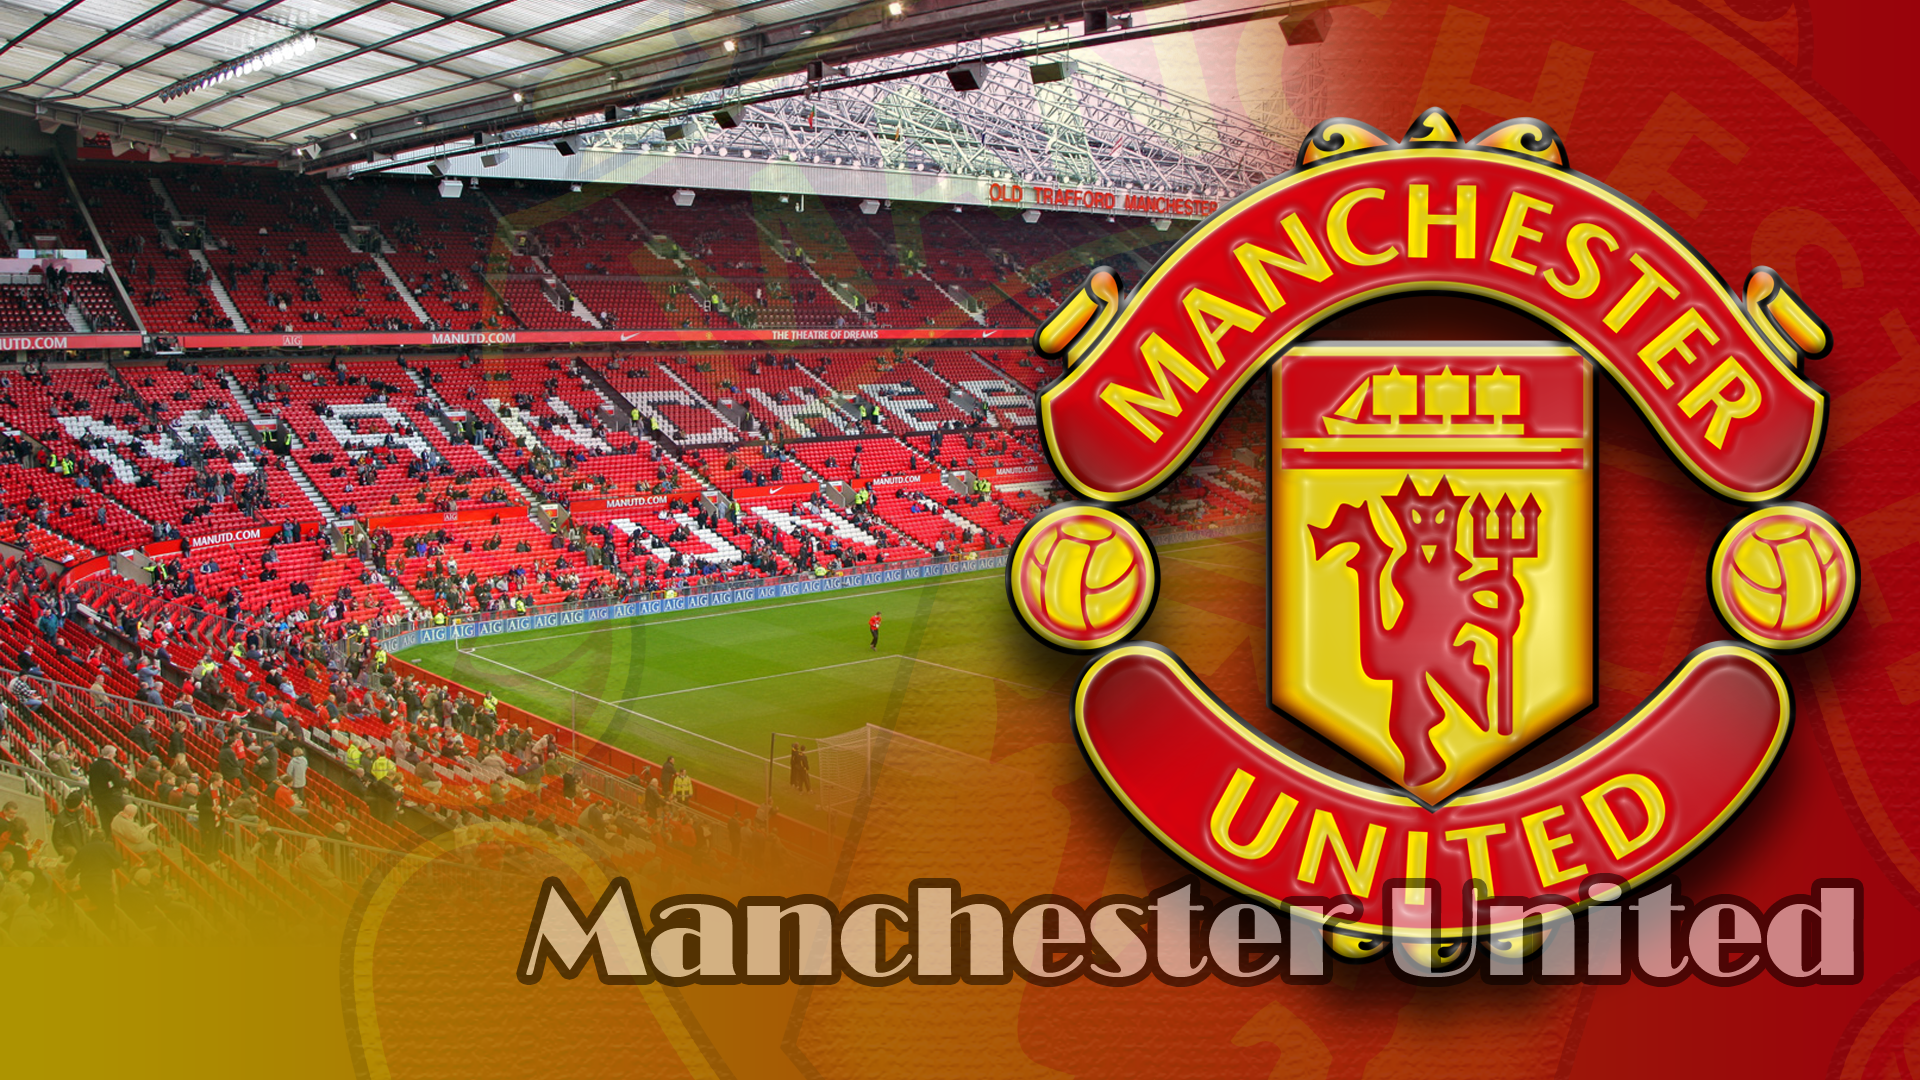 Manchester United Hd Background Old Trafford Manchester United Wayne Rooney